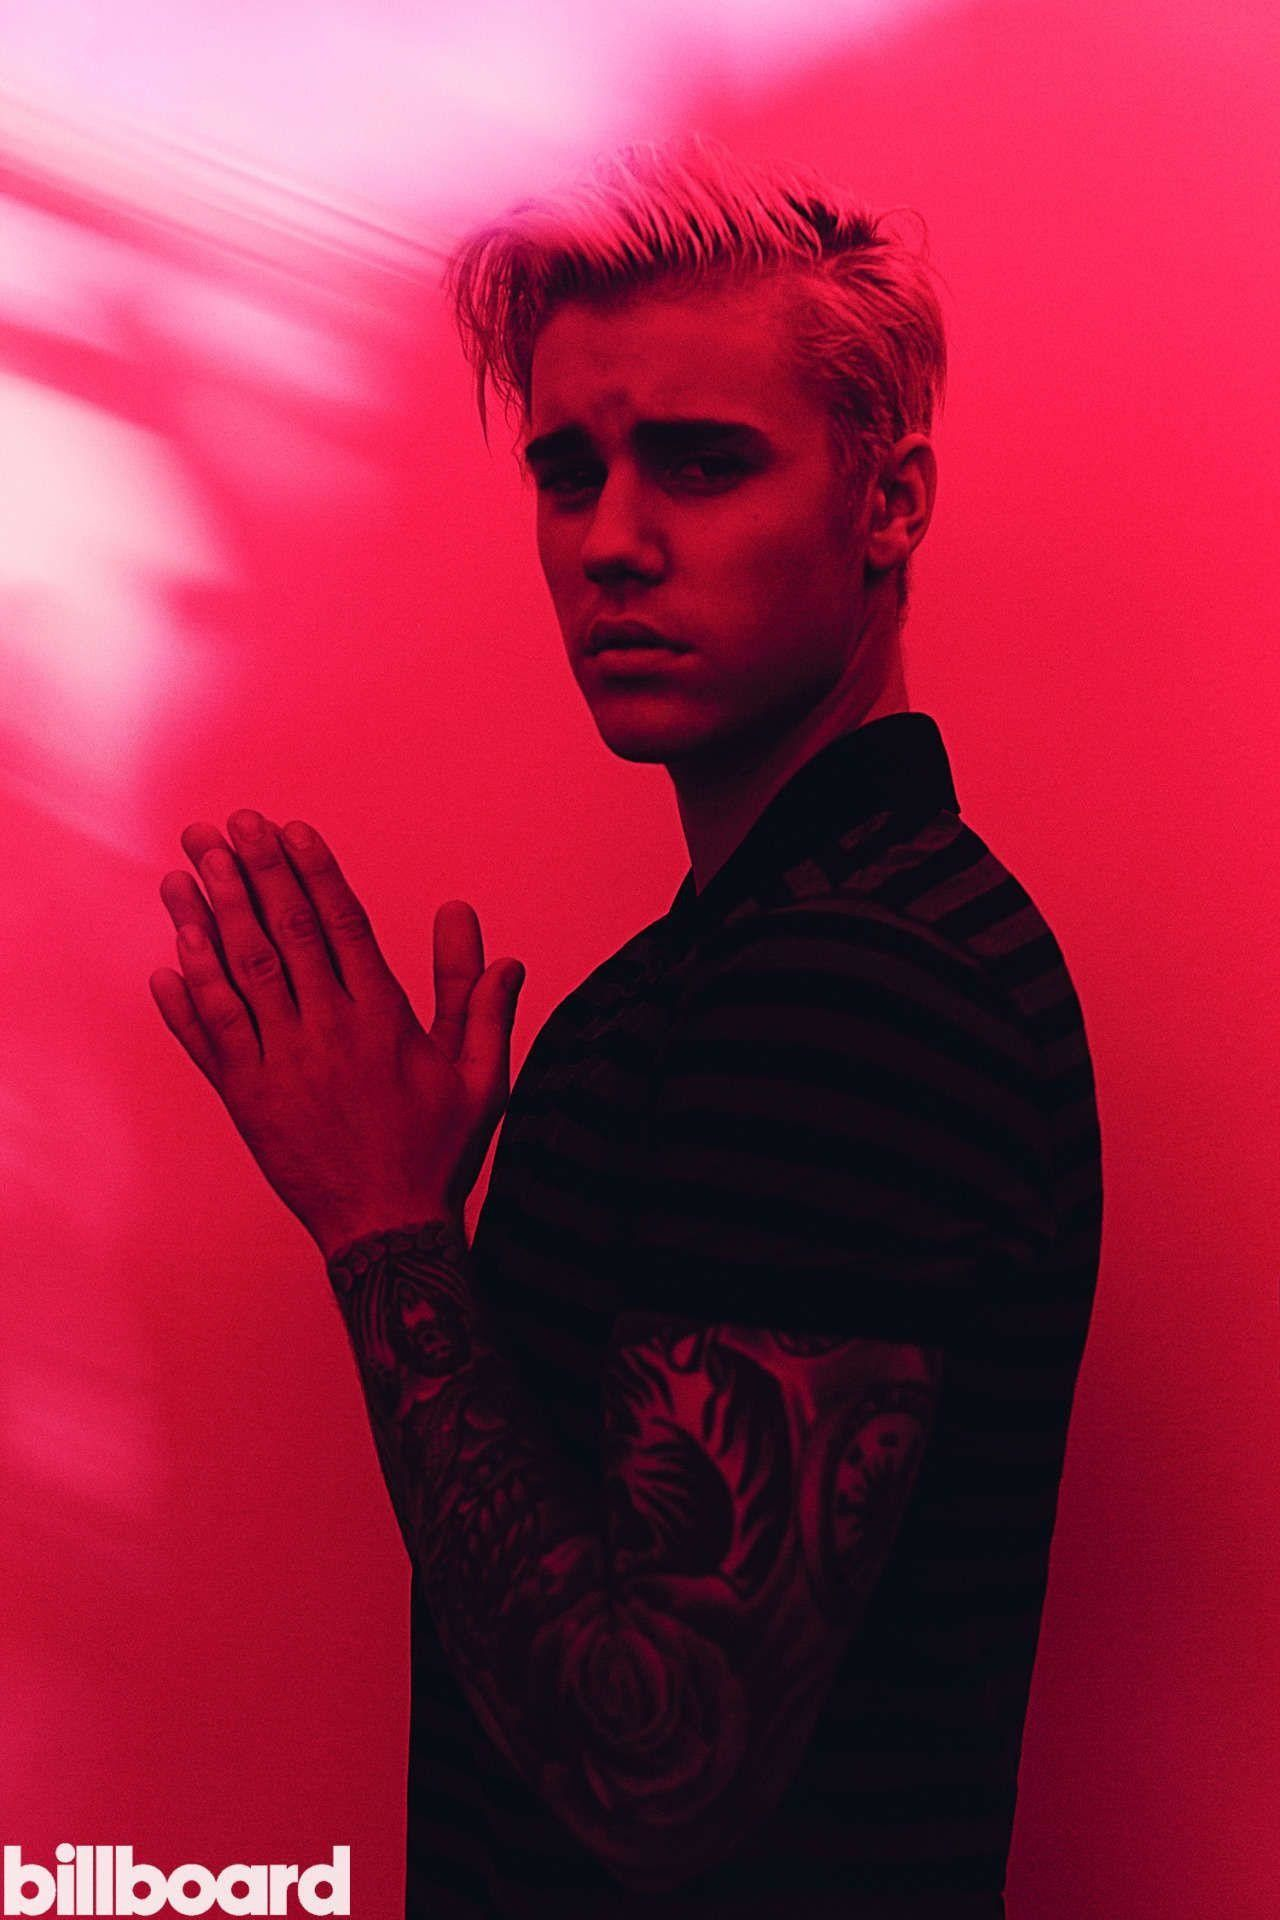 1280x1920 Justin Bieber Pictures For Iphone 6s Plus Hd Images Wallpapers Justin Bieber Fotos Justin Bieber Justin Bieber Sesion De Fotos